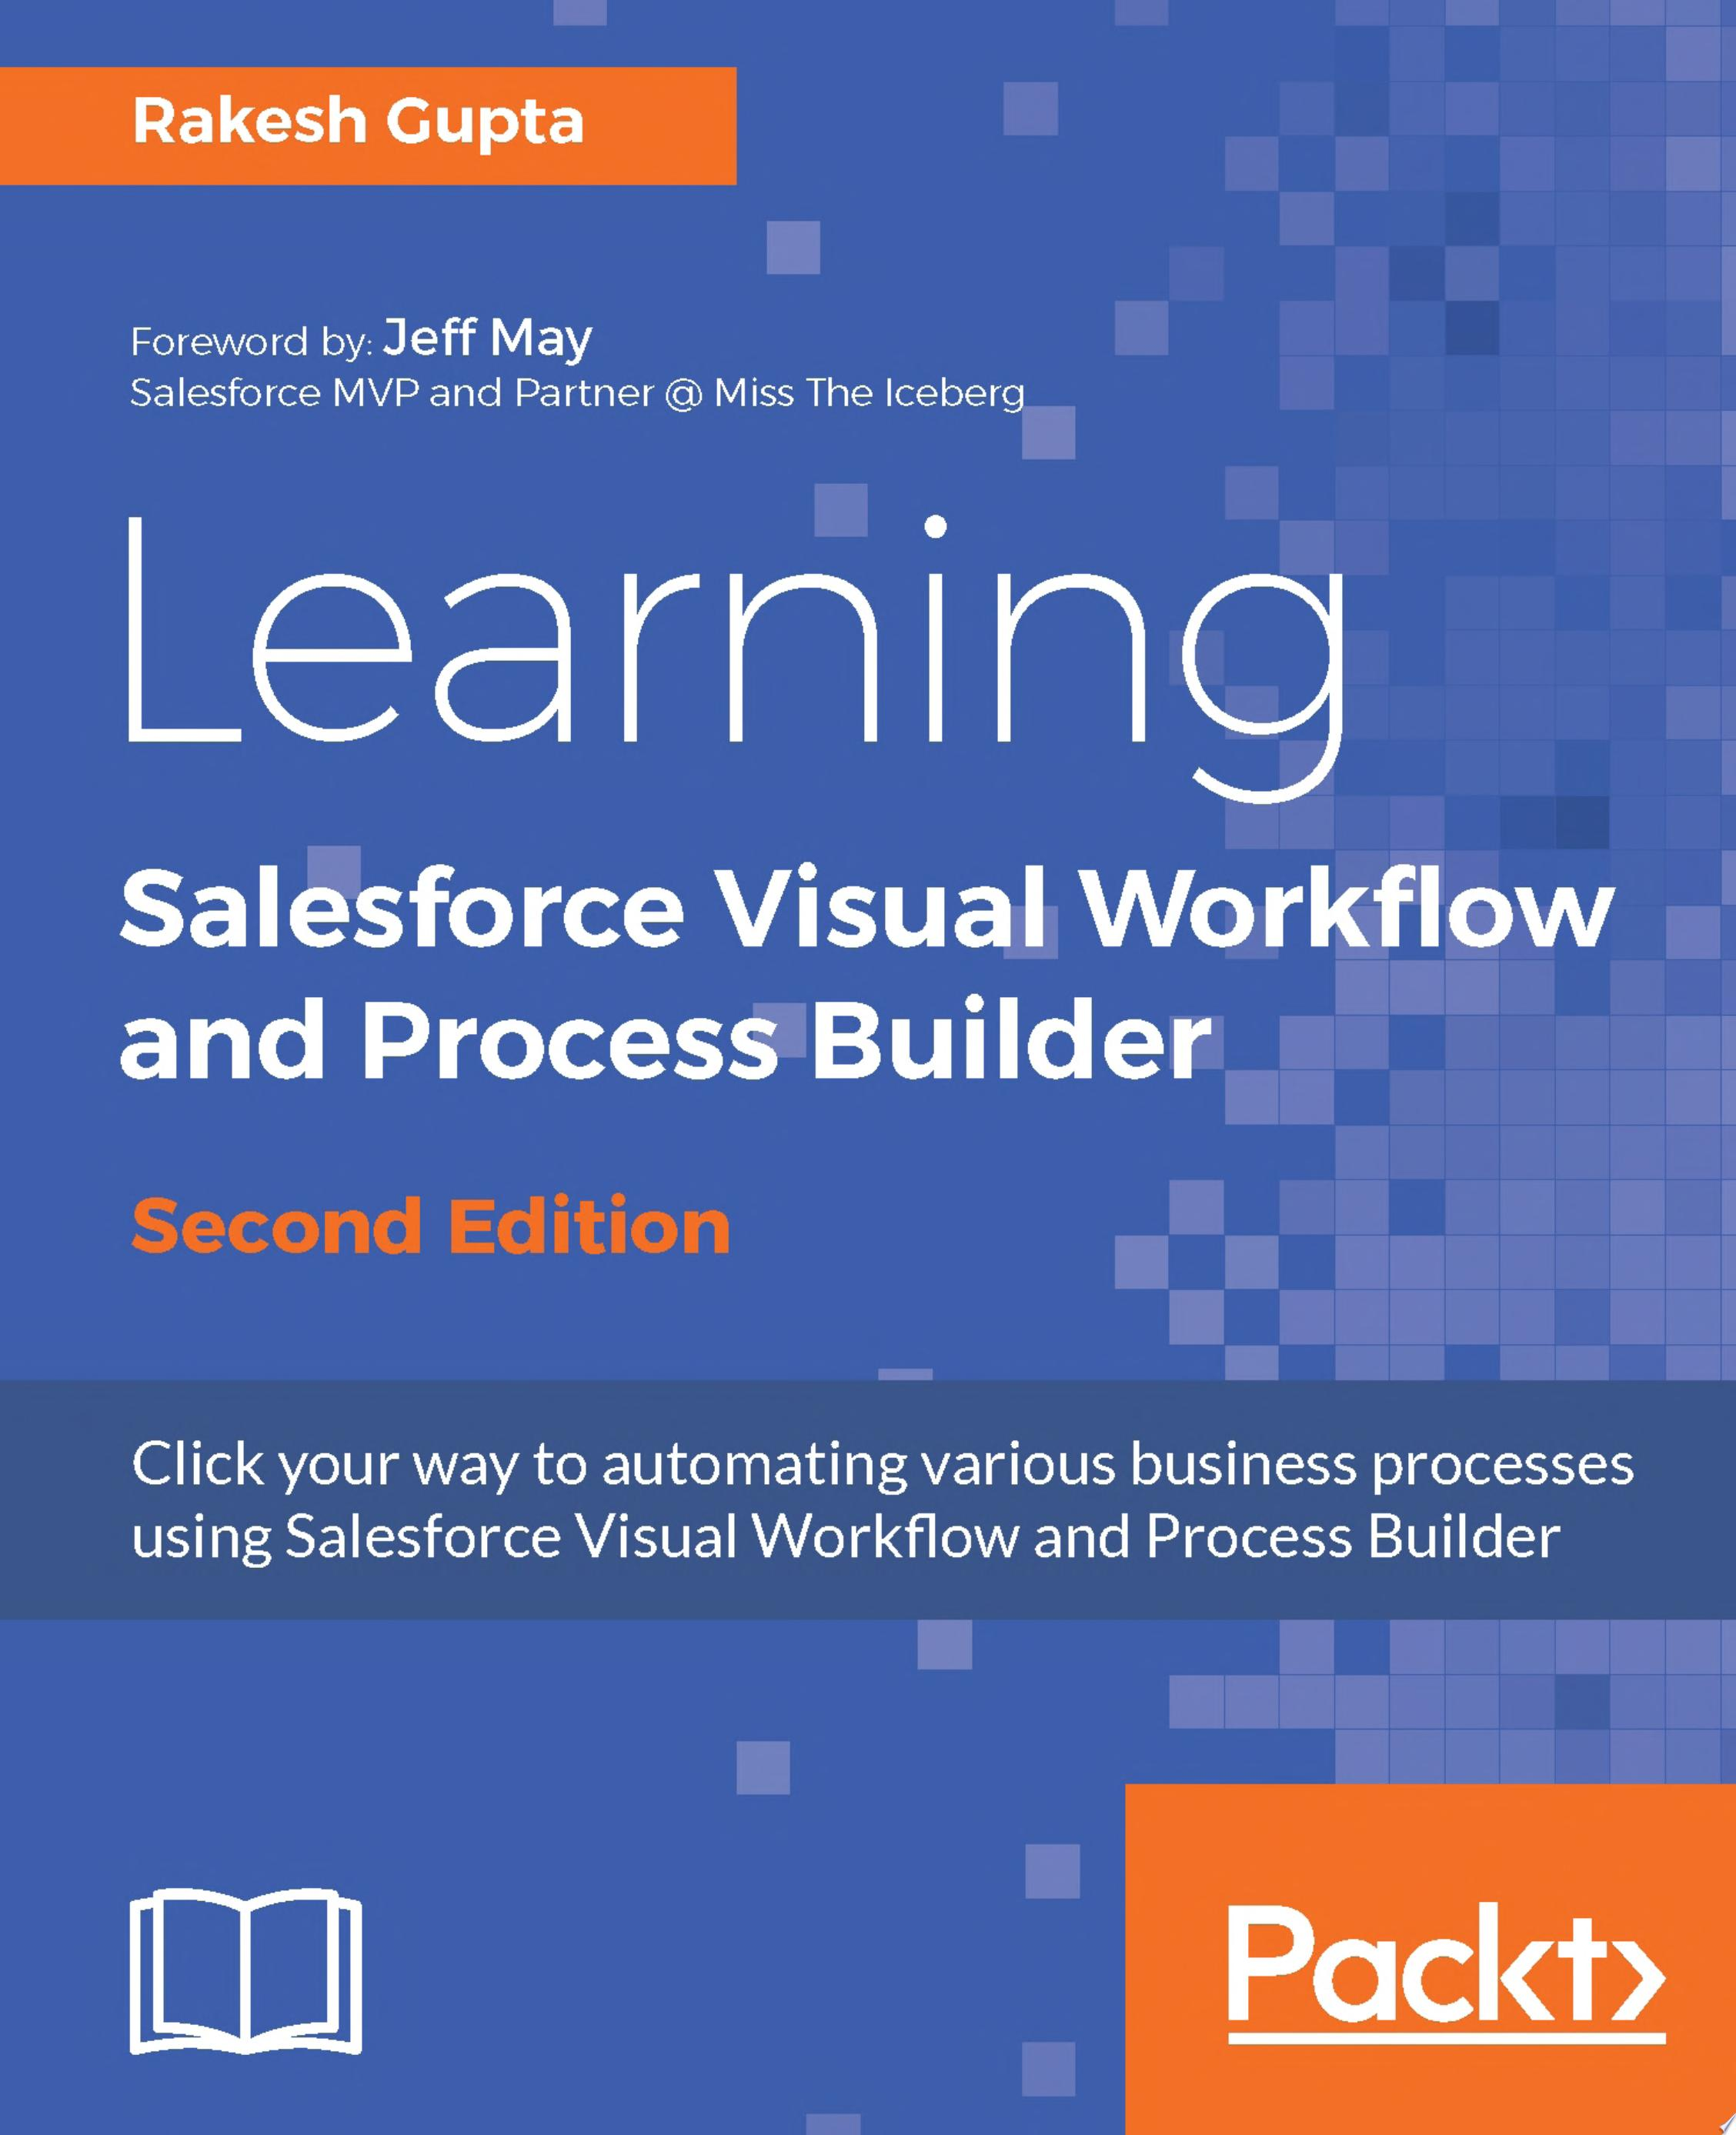 Learning Salesforce Visual Workflow and Process Builder